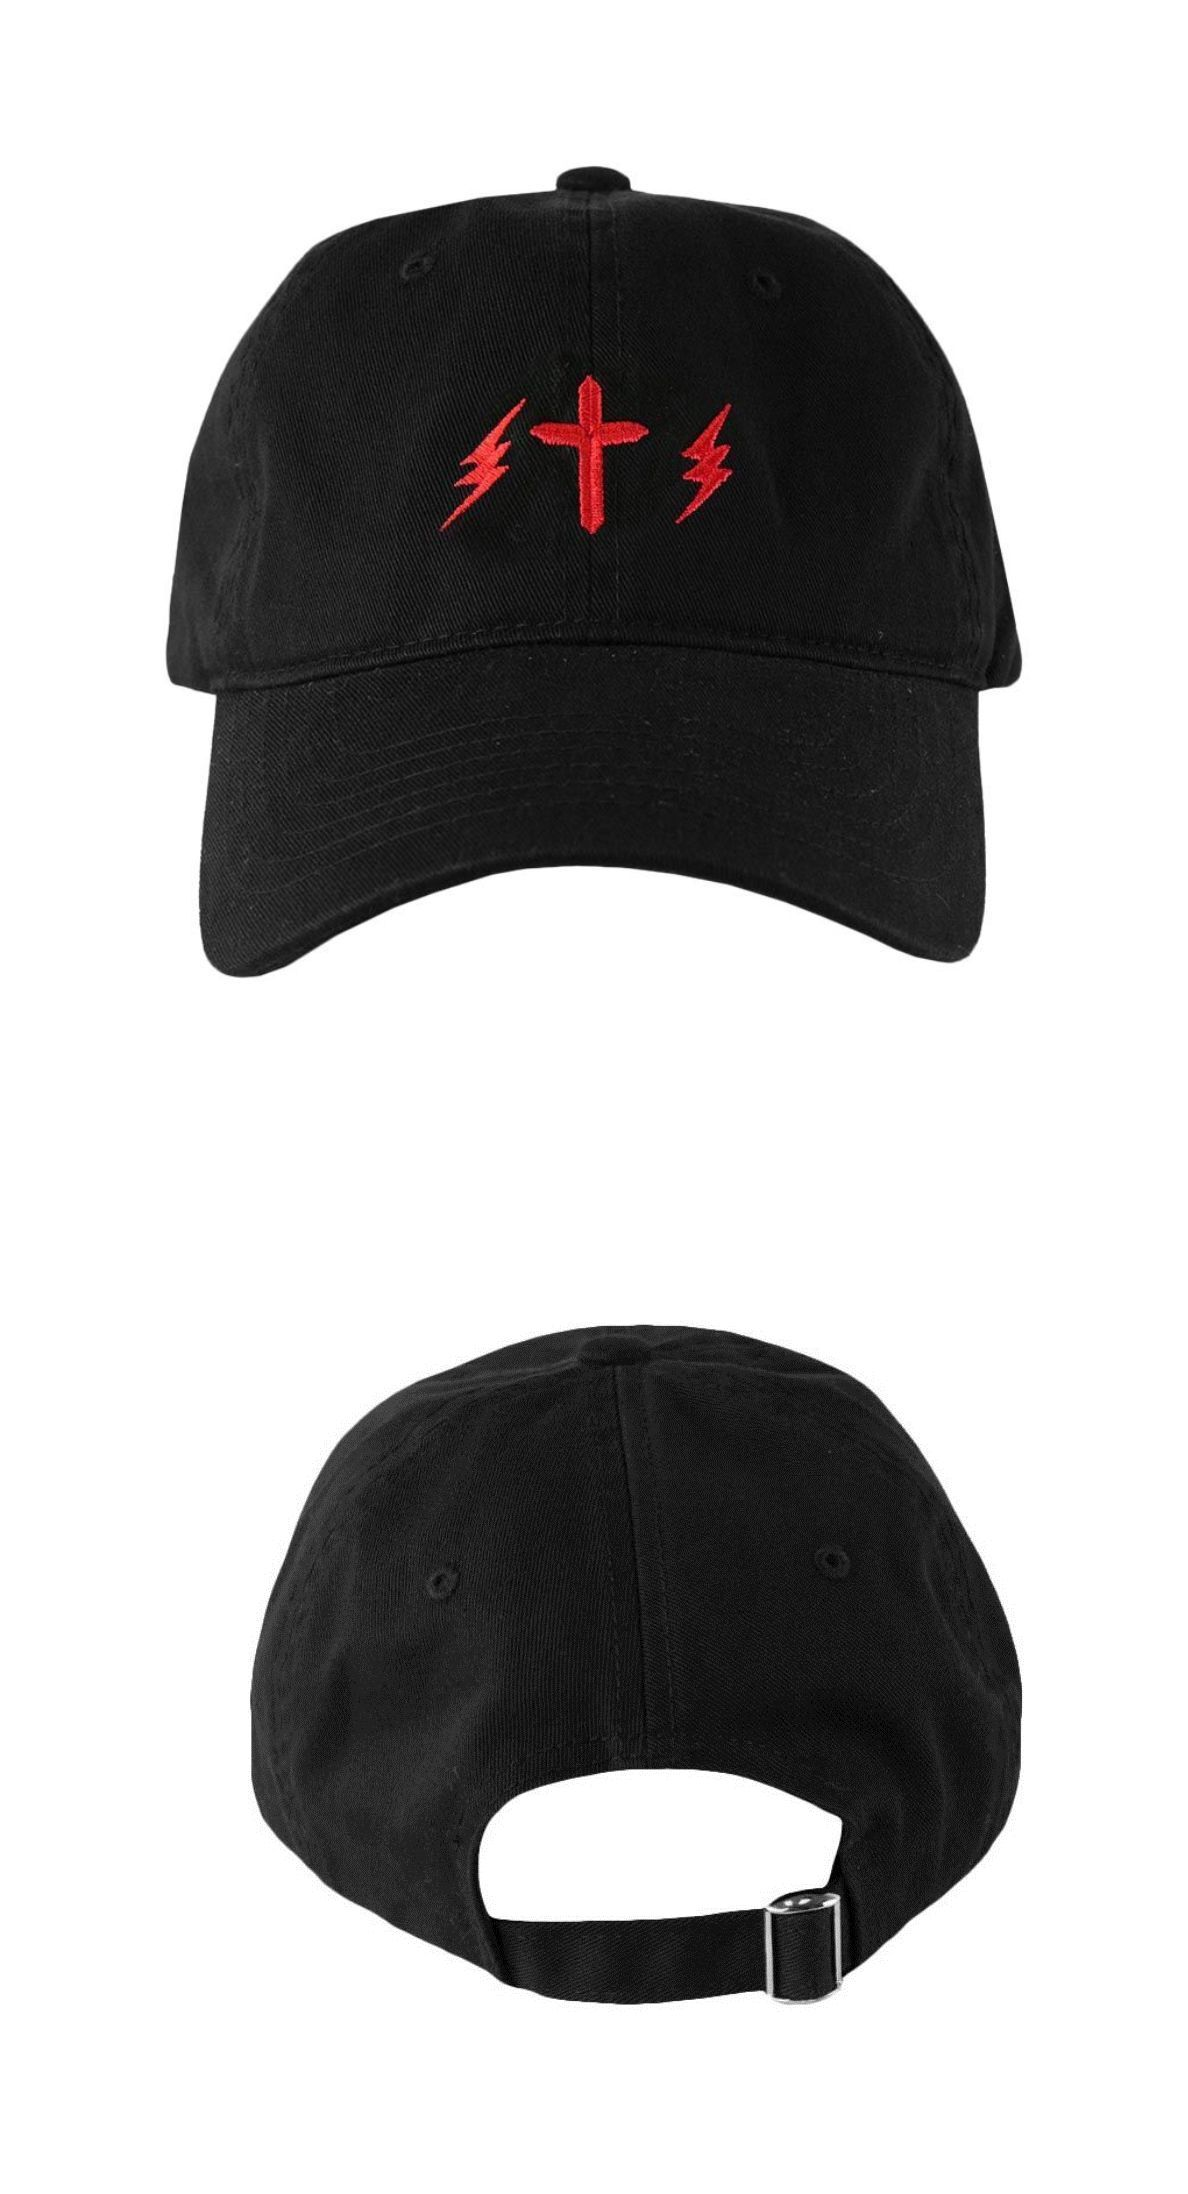 Other Unisex Clothing and Accs 167905  The Weeknd Xo Starboy Symbol Dad Cap  Kiss Land Kissland Bbtm Trilogy -  BUY IT NOW ONLY   150 on eBay! 86fc5ce9da7